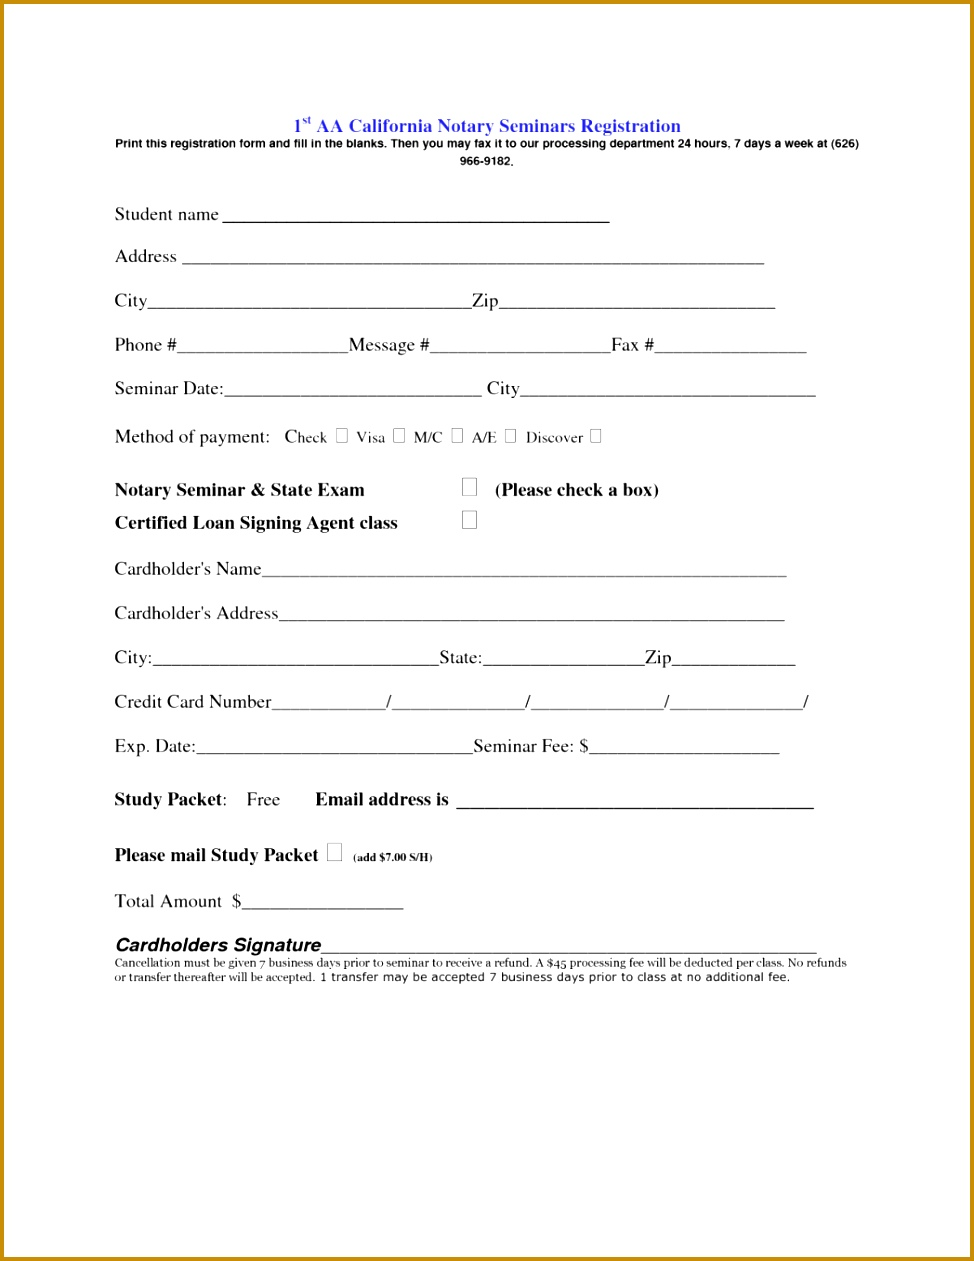 3 seminar registration form template word fabtemplatez seminar registration form template word 98585 outstanding business development and registration form template maxwellsz